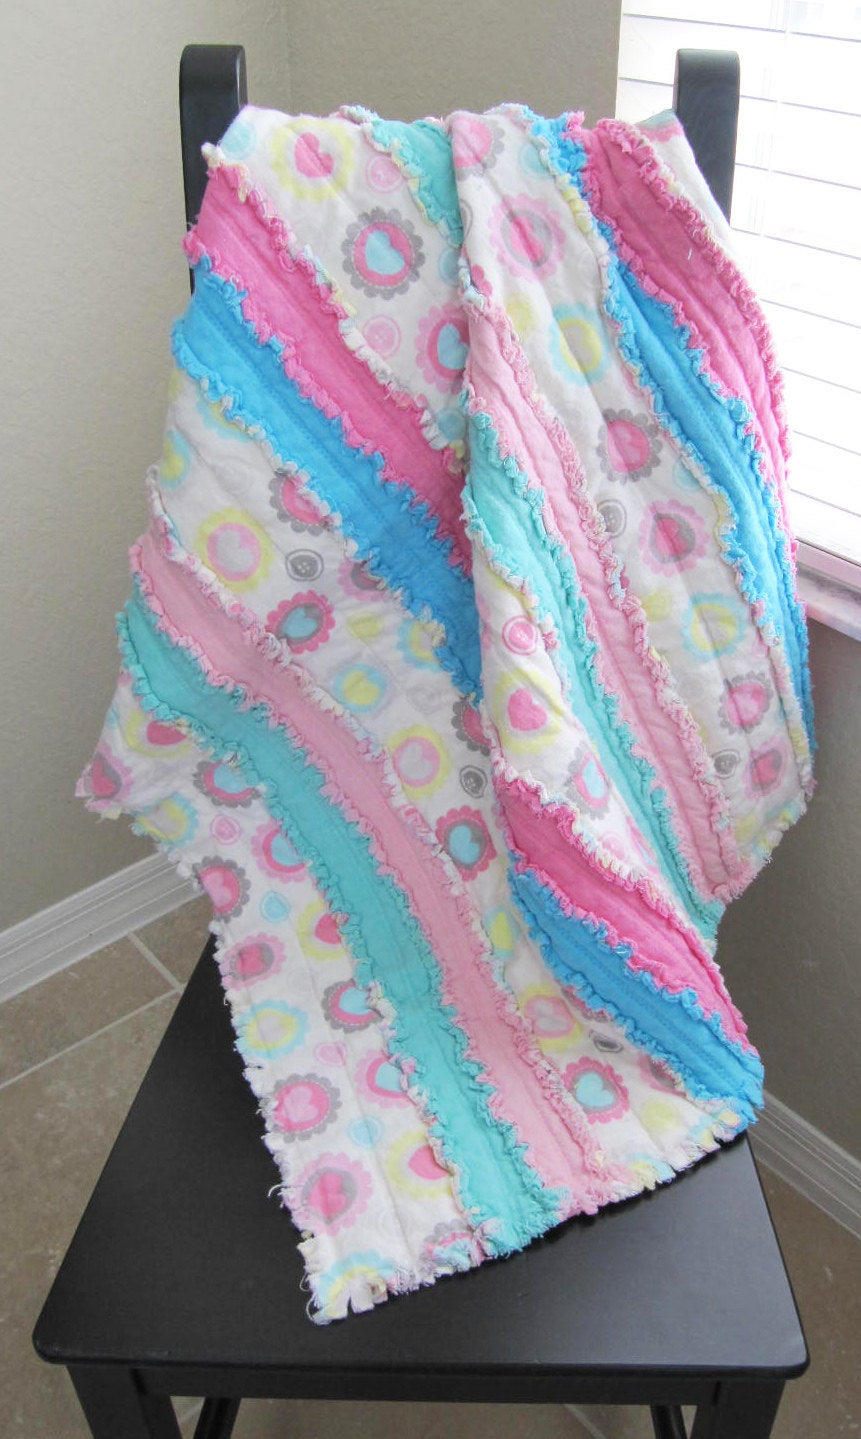 Jelly Roll Rag Quilt for Baby/Toddler - pink, blue, mint, grey, baby girl, baby shower gift, cuddle blanket